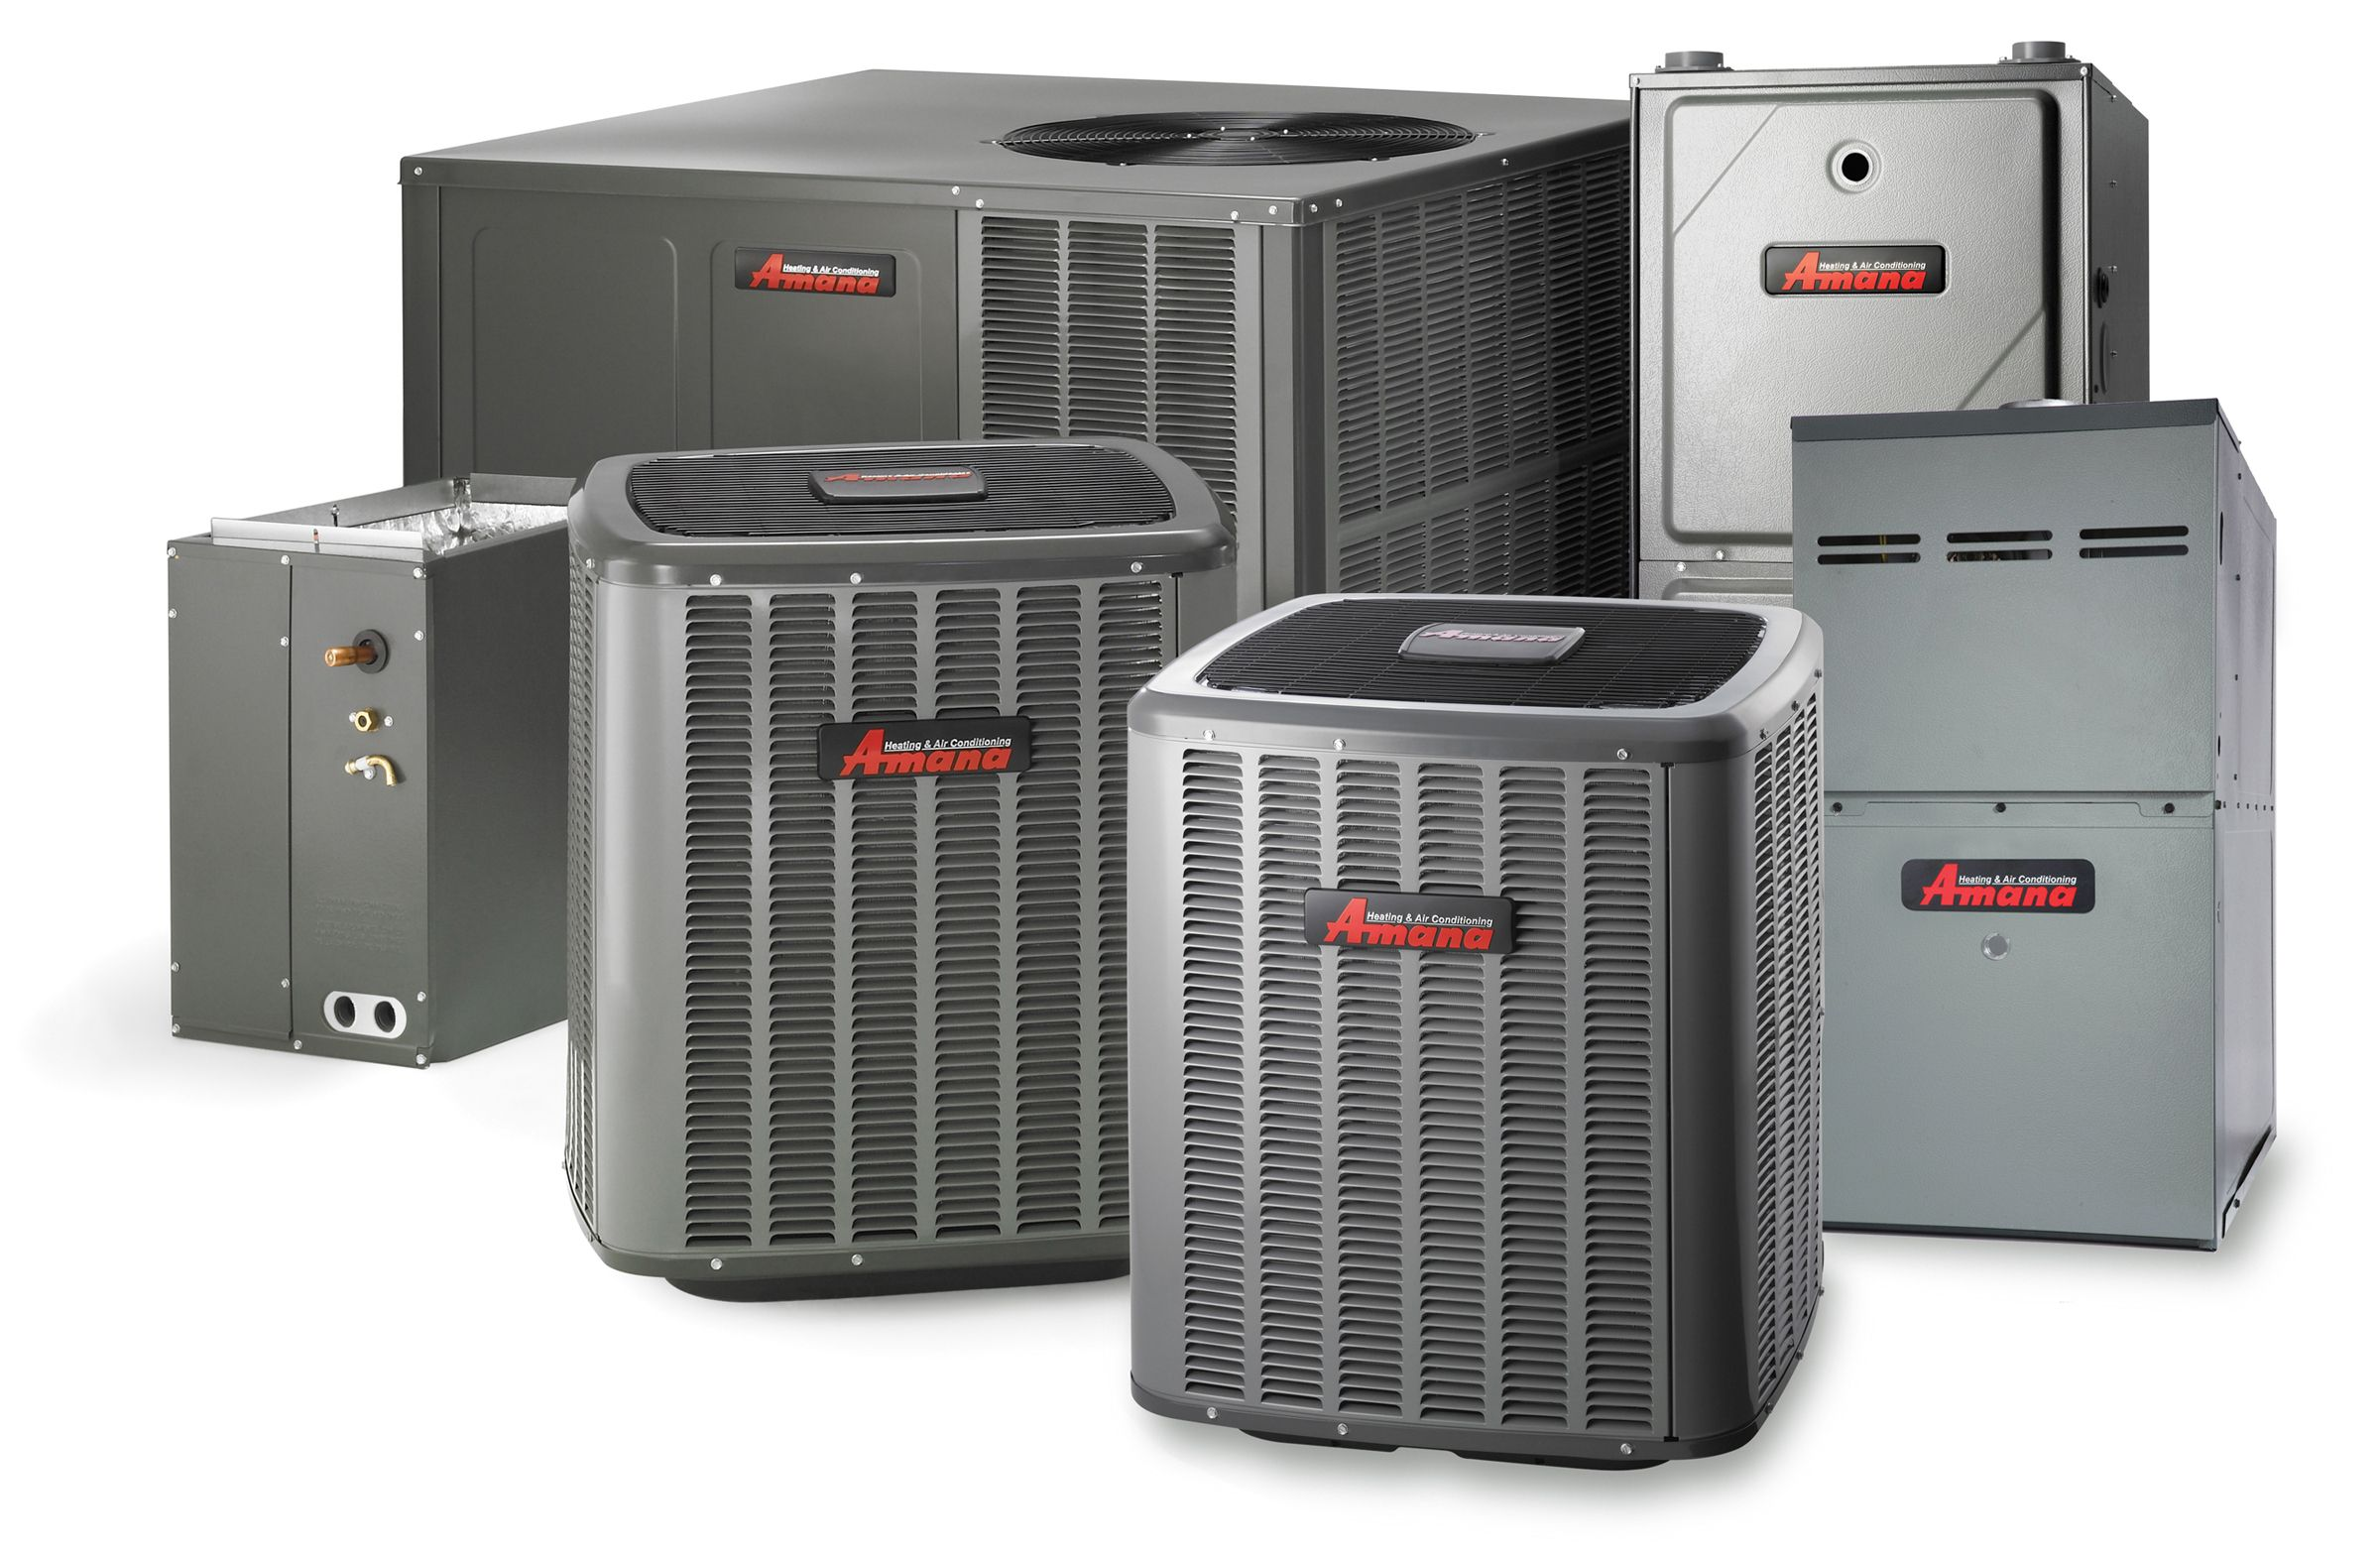 Pin by Around The Town HVAC on Amana Air conditioning